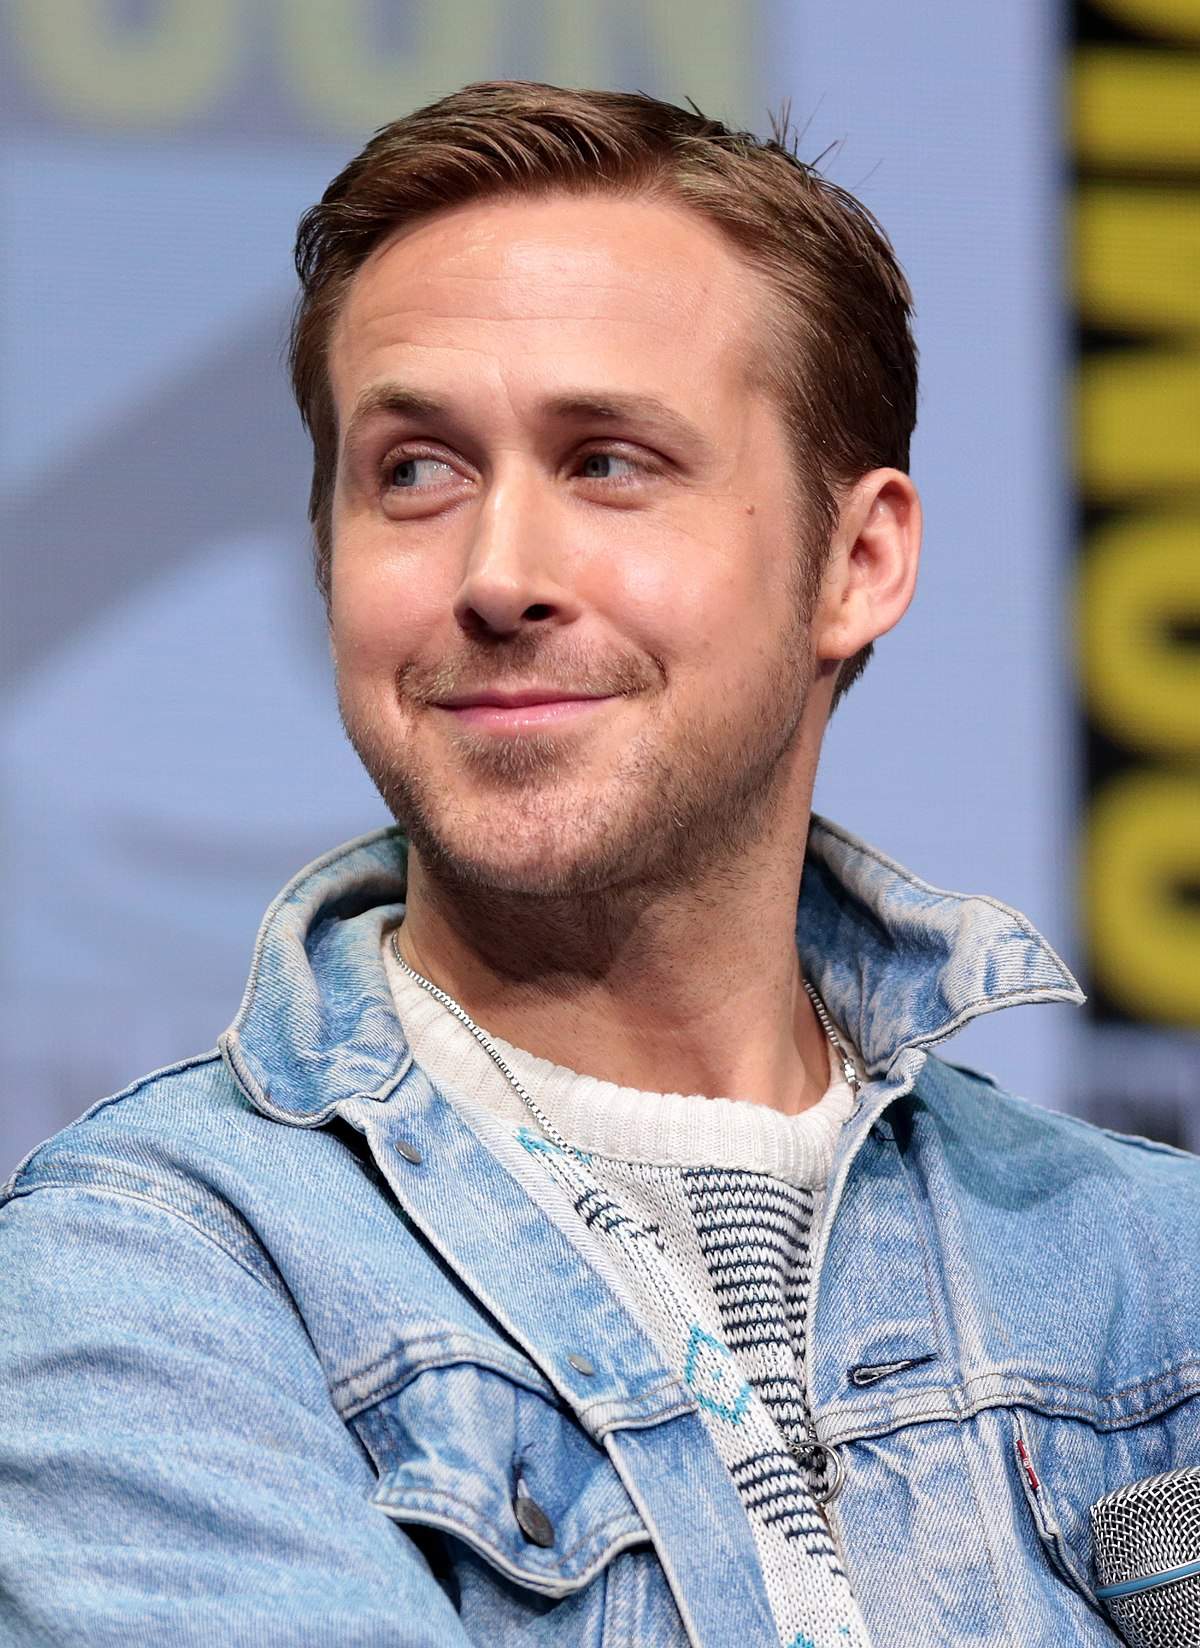 Ryan Gosling - Wikipedia Ryan Gosling